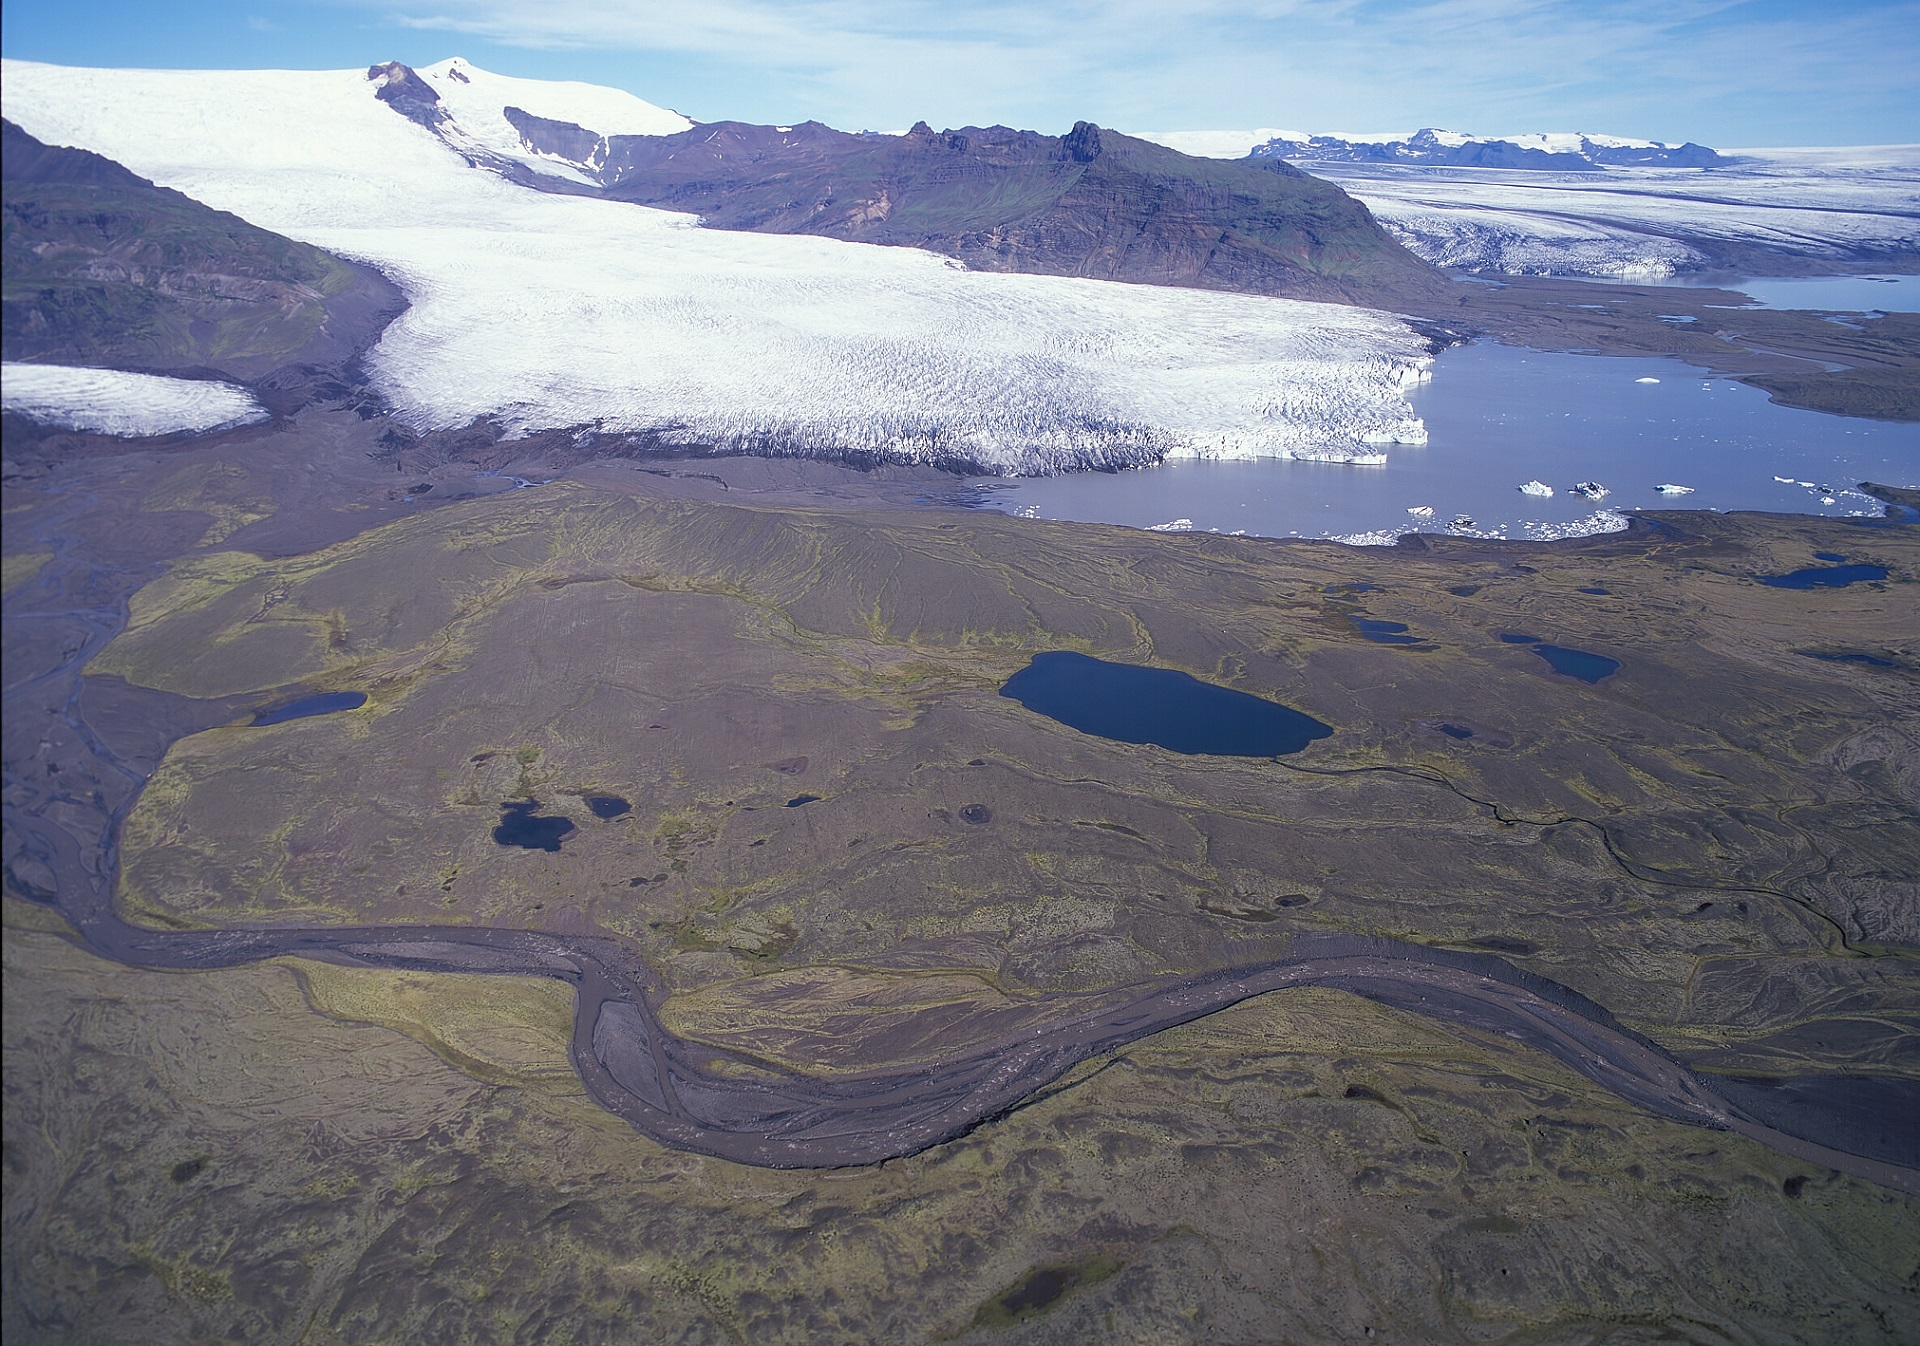 The snout of Hrútárjökull, Fjallsárjökull and Breiðamerkurjökull outlet glaciers in the background. The Little Ice Age moraines from ca 1890 are visible in the moss covered sandur plain. Terminal glacial lakes have increased in size in recent decades and enhance ablation. Photo: Snævarr Guðmundsson, 2006.